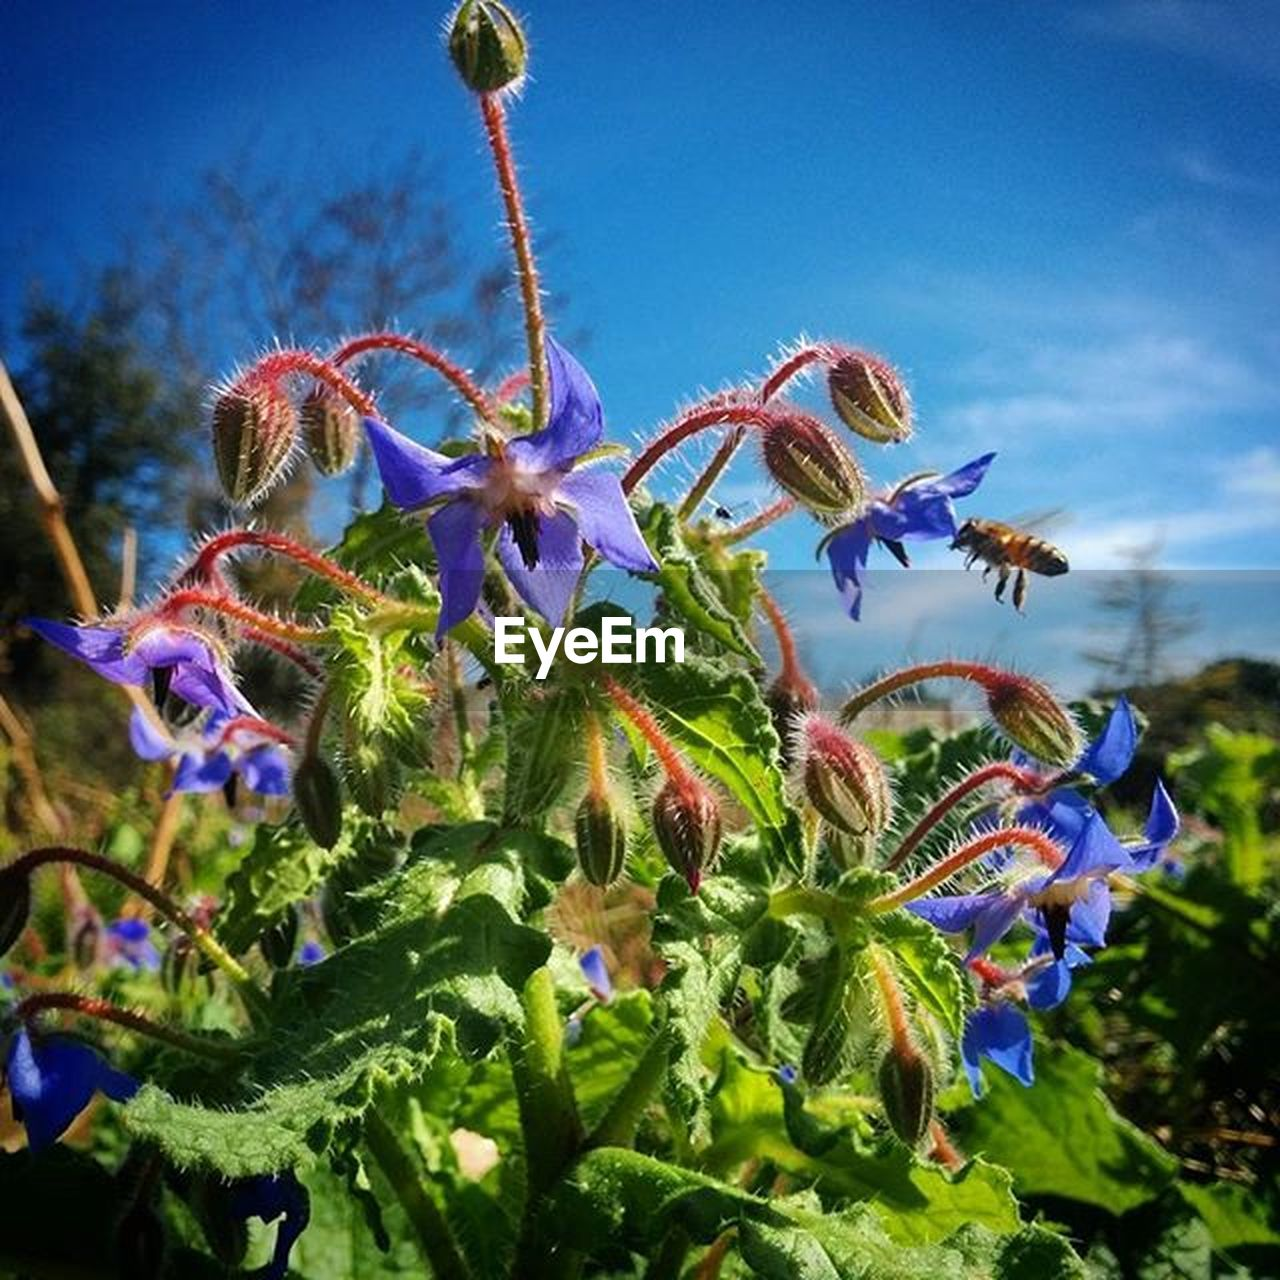 growth, flower, fragility, beauty in nature, nature, freshness, plant, close-up, day, no people, petal, flower head, outdoors, low angle view, blue, focus on foreground, stamen, blooming, sky, passion flower